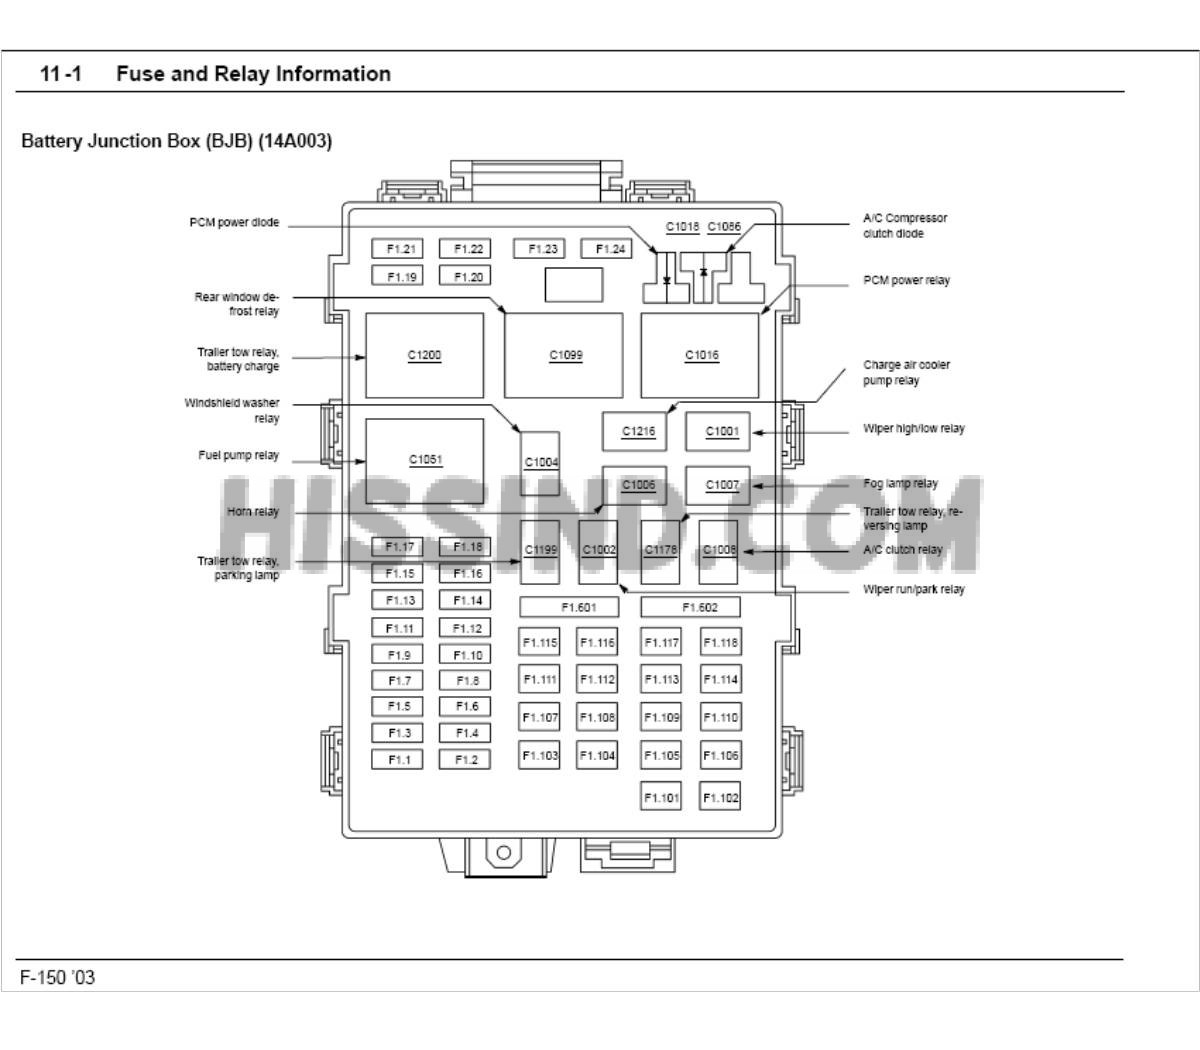 1999 Ford F 150 Fuse Box Designs Wiring Diagram F150 1995 Aerostar